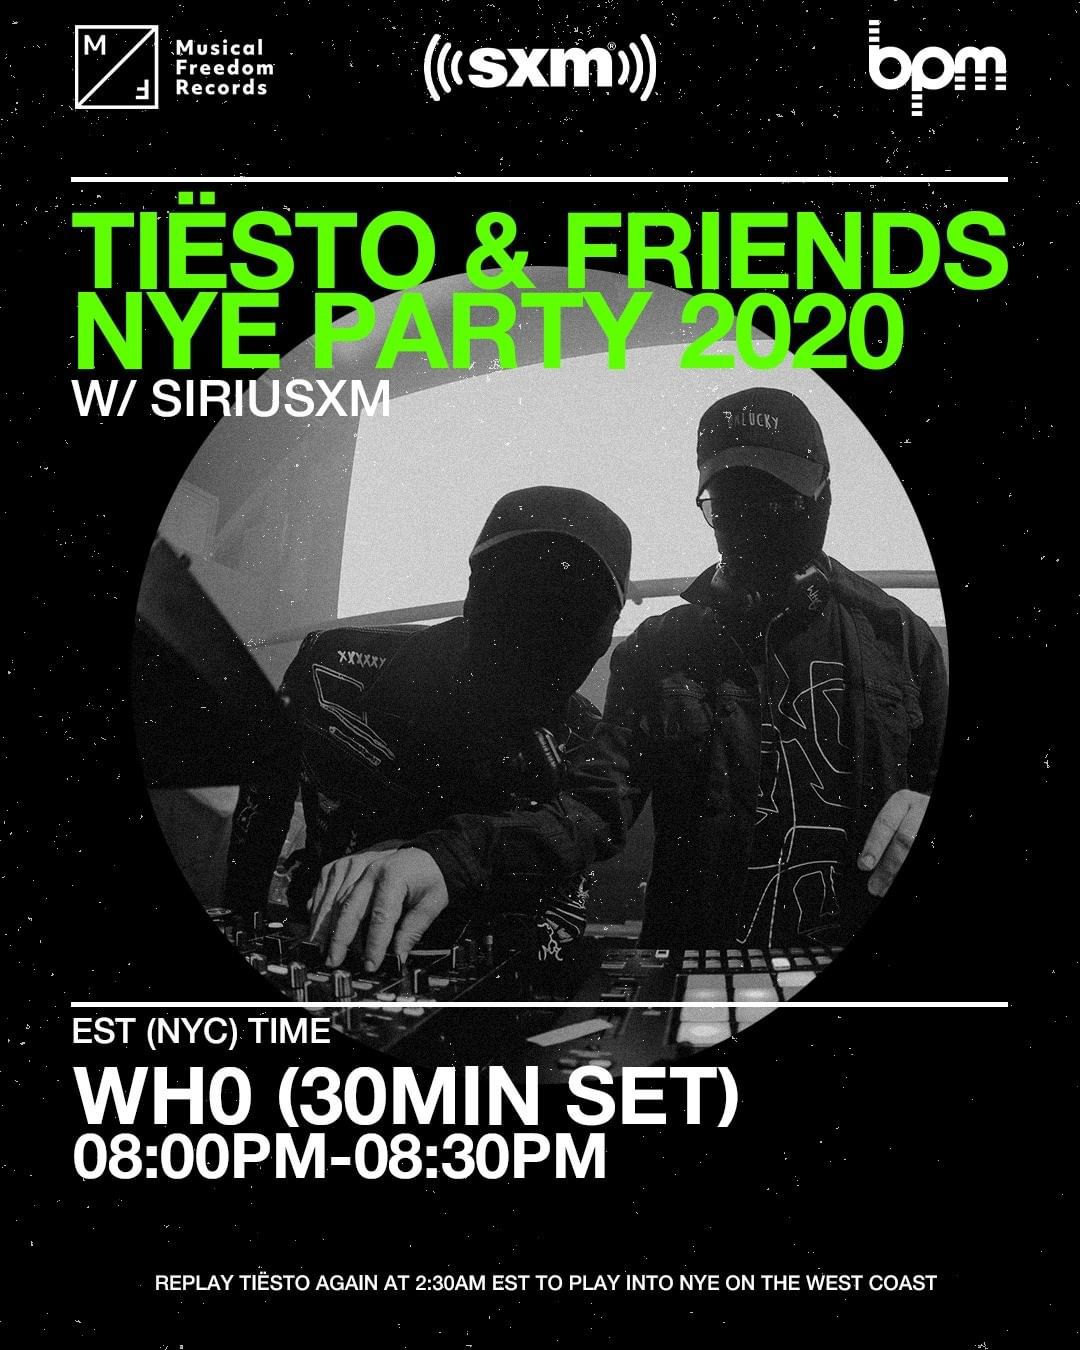 Tiësto and friends, New Year 2020 on Sirius Xm, who